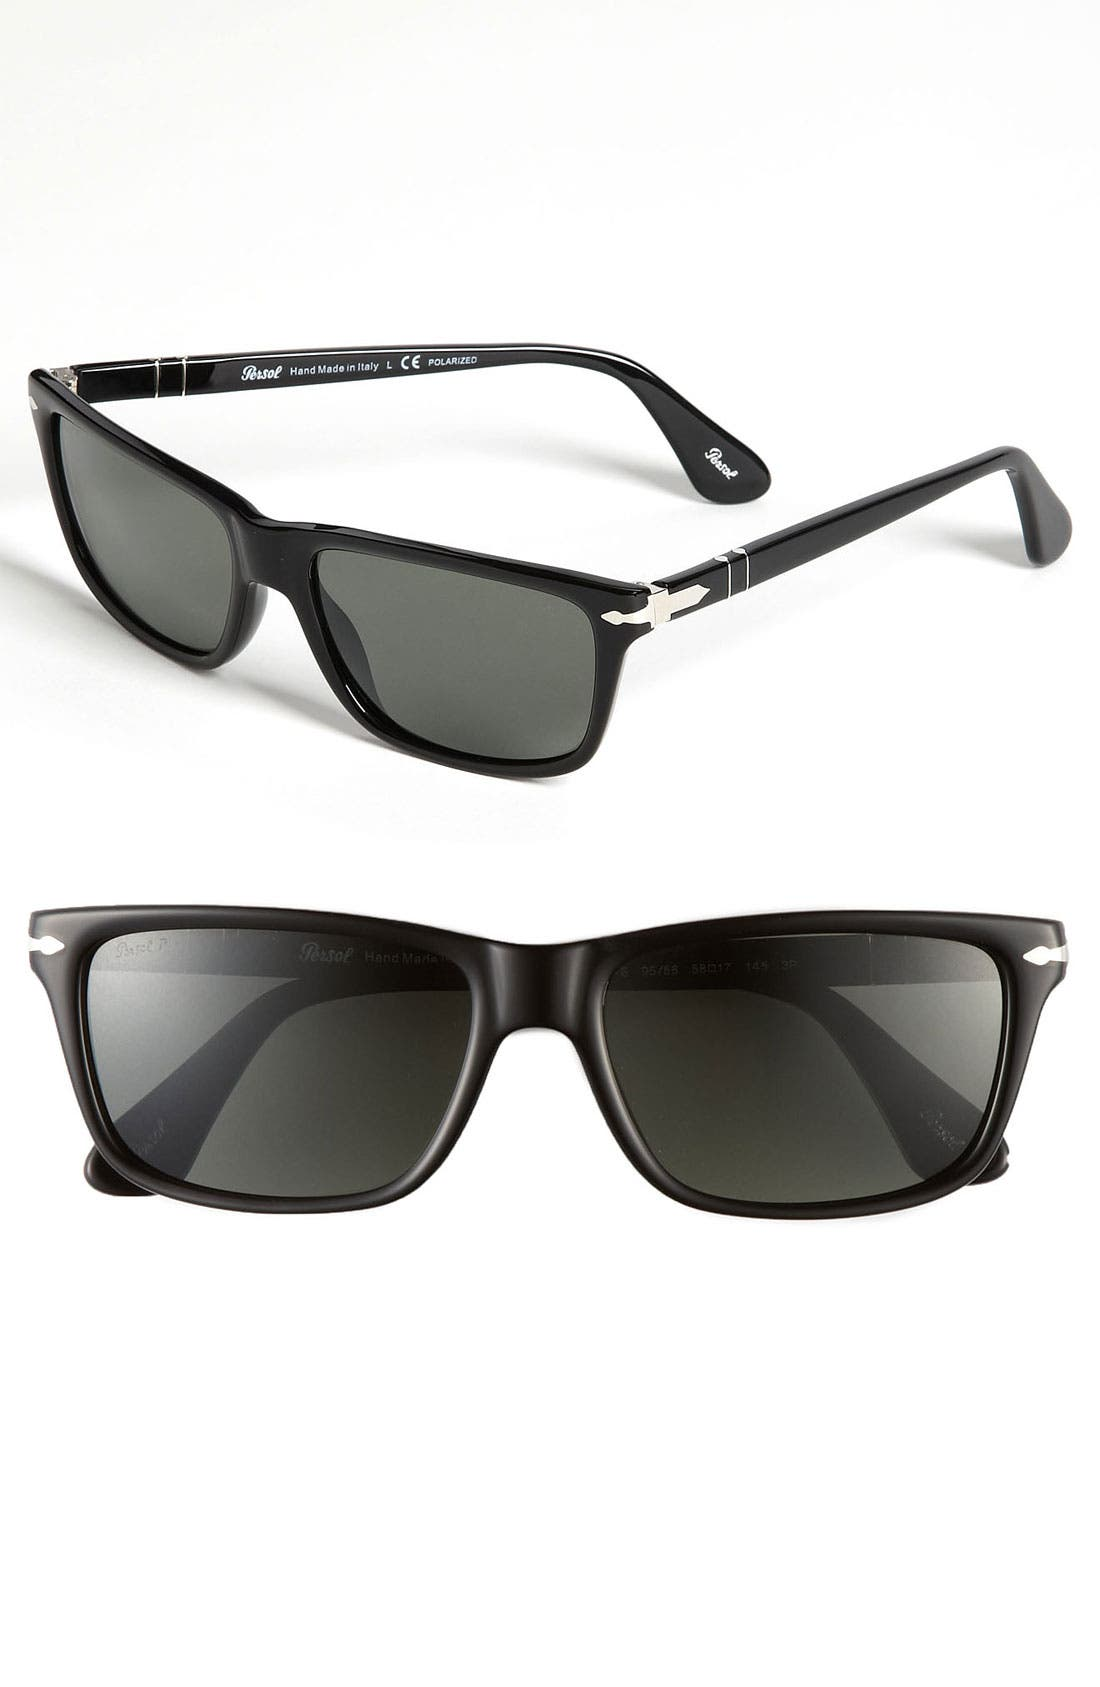 Main Image - Persol 58mm Polarized Sunglasses